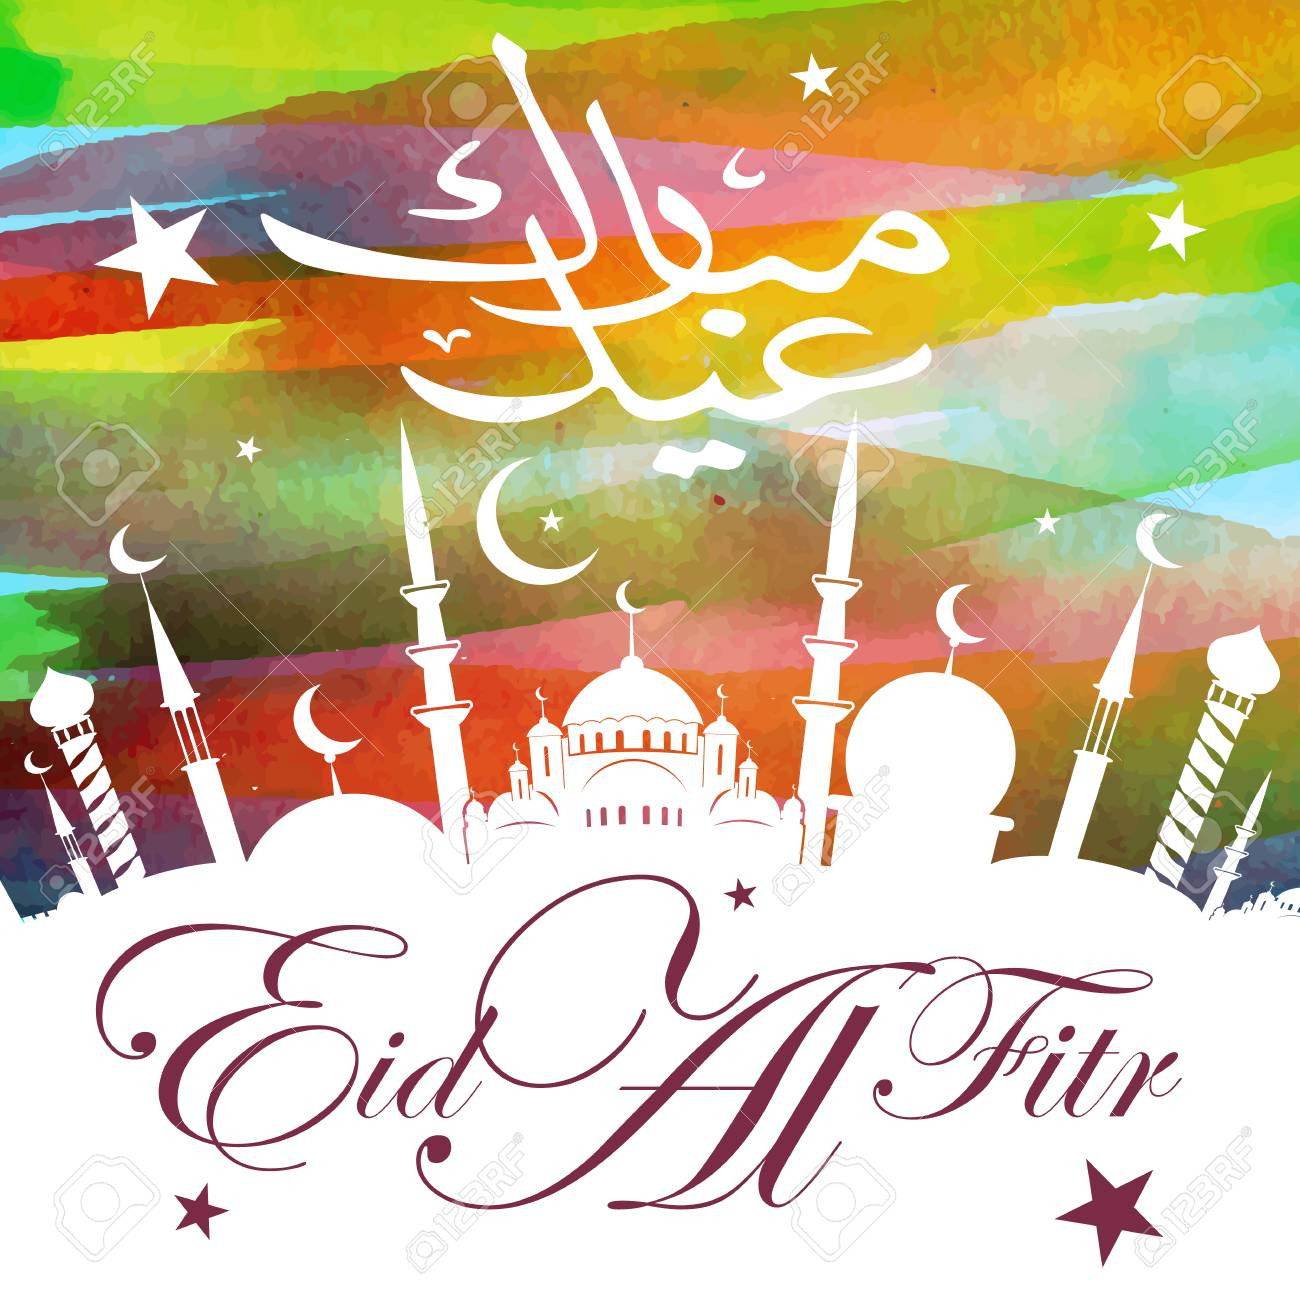 Most Inspiring Arabic Eid Al-Fitr Feast - 78759524-calligraphy-of-arabic-text-eid-al-fitr-feast-of-breaking-the-fast-holiday-greeting-card-in-retro-sty  Collection_968830 .jpg